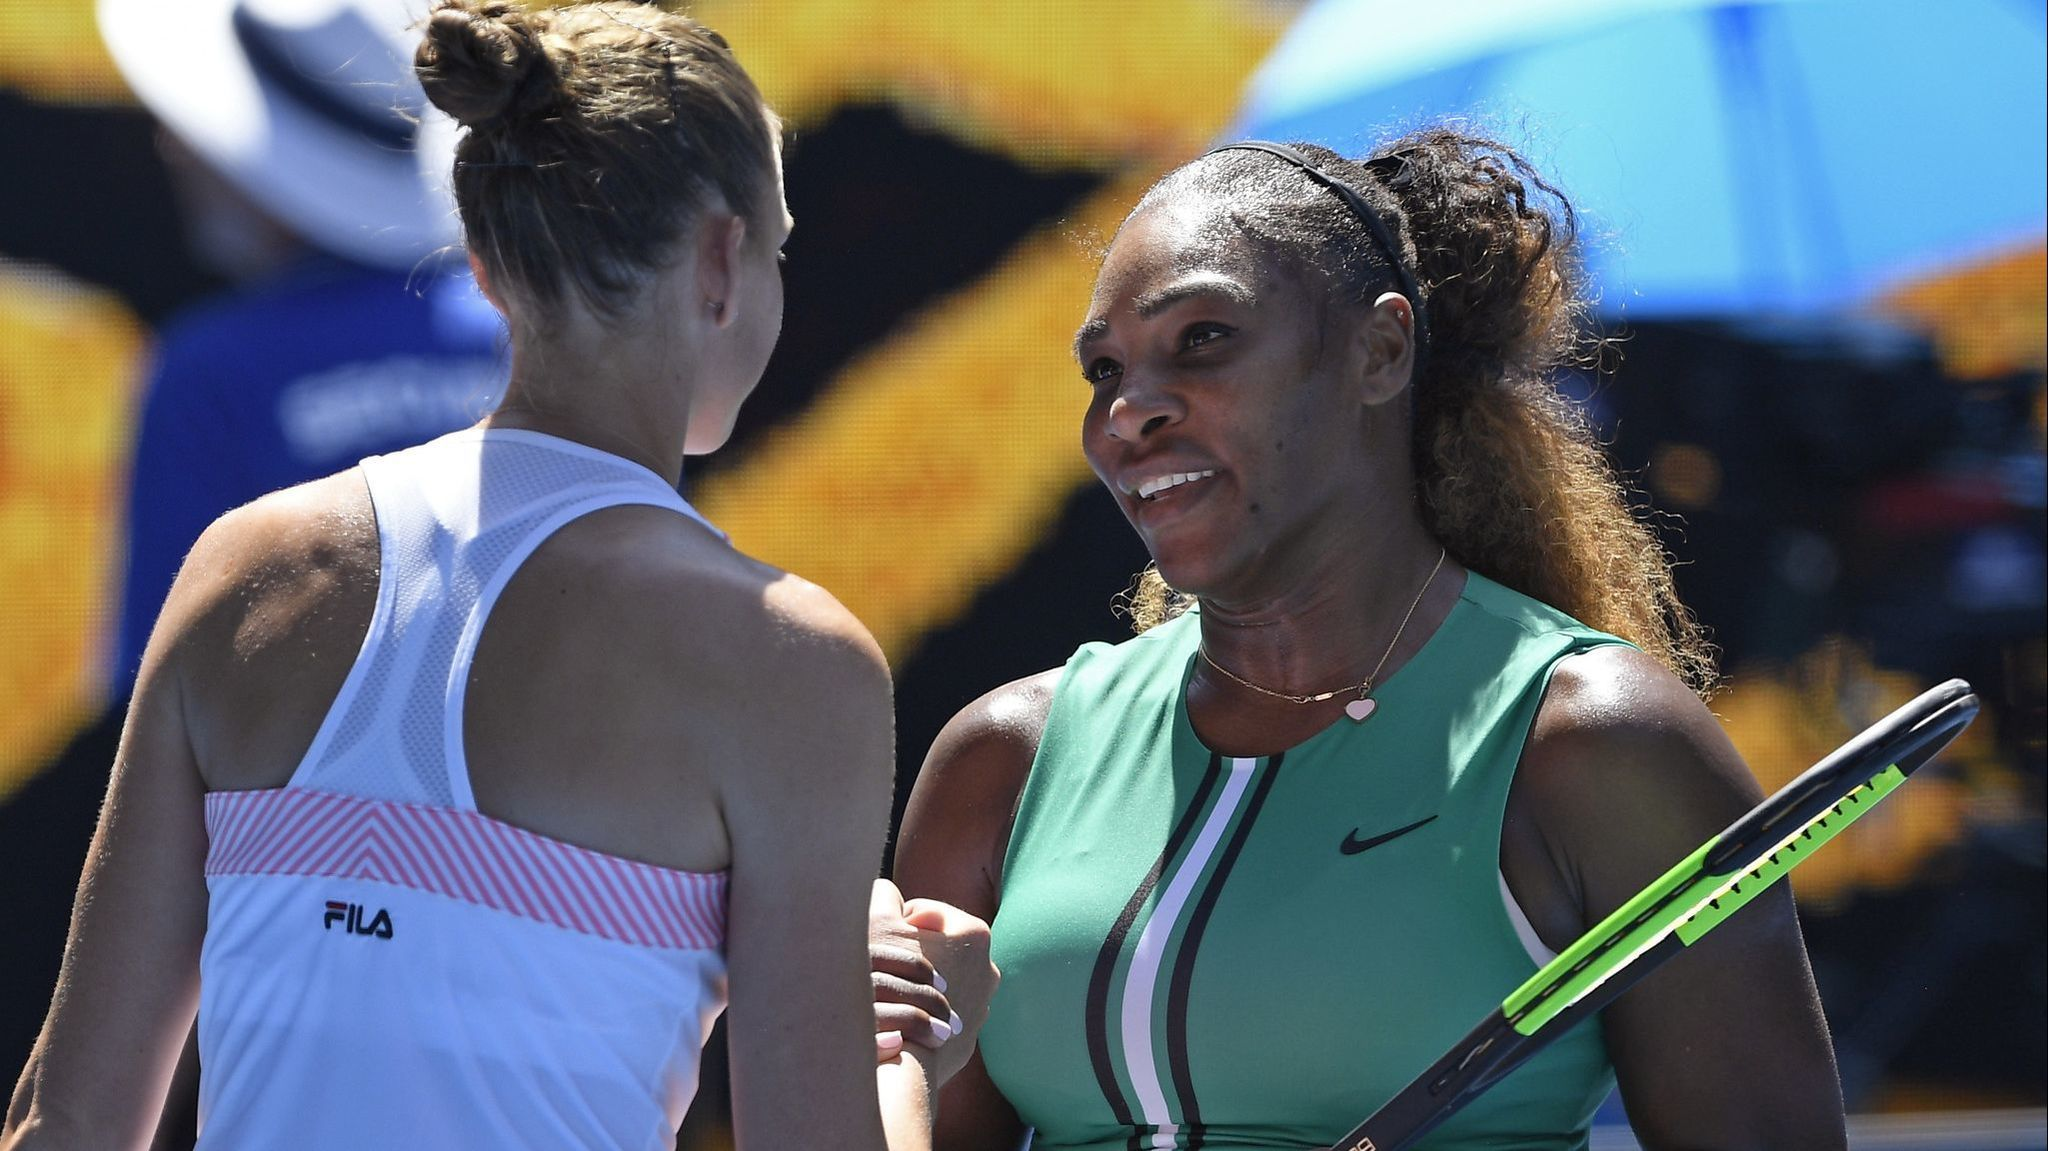 Australian Open: Serena Williams' run comes to end